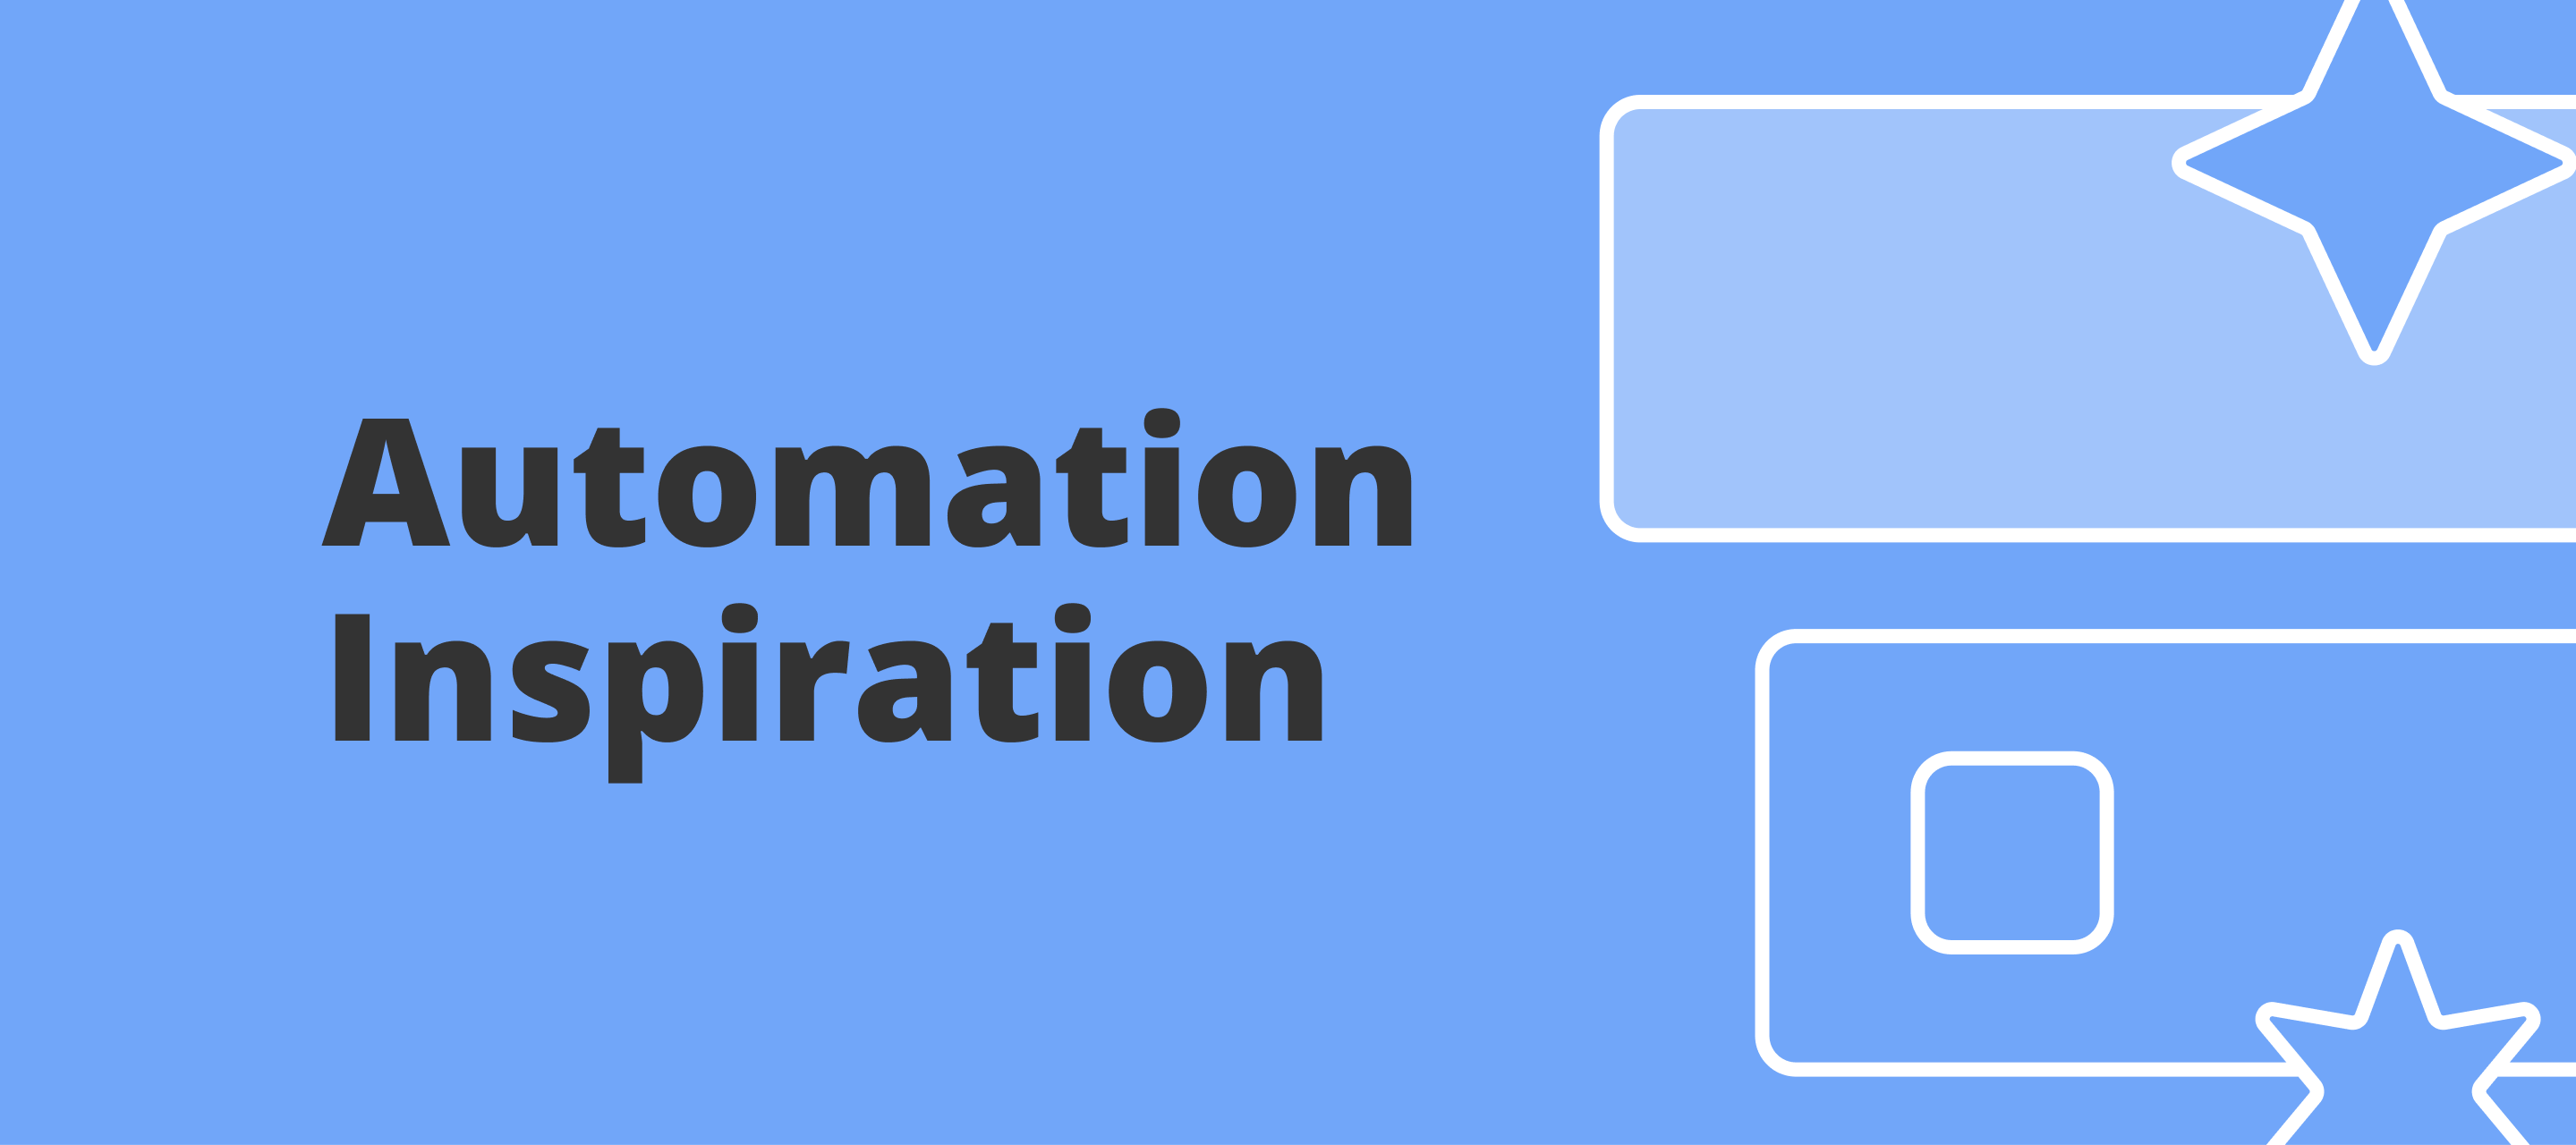 Automate behaviors: Force people to make a copy of your Google files